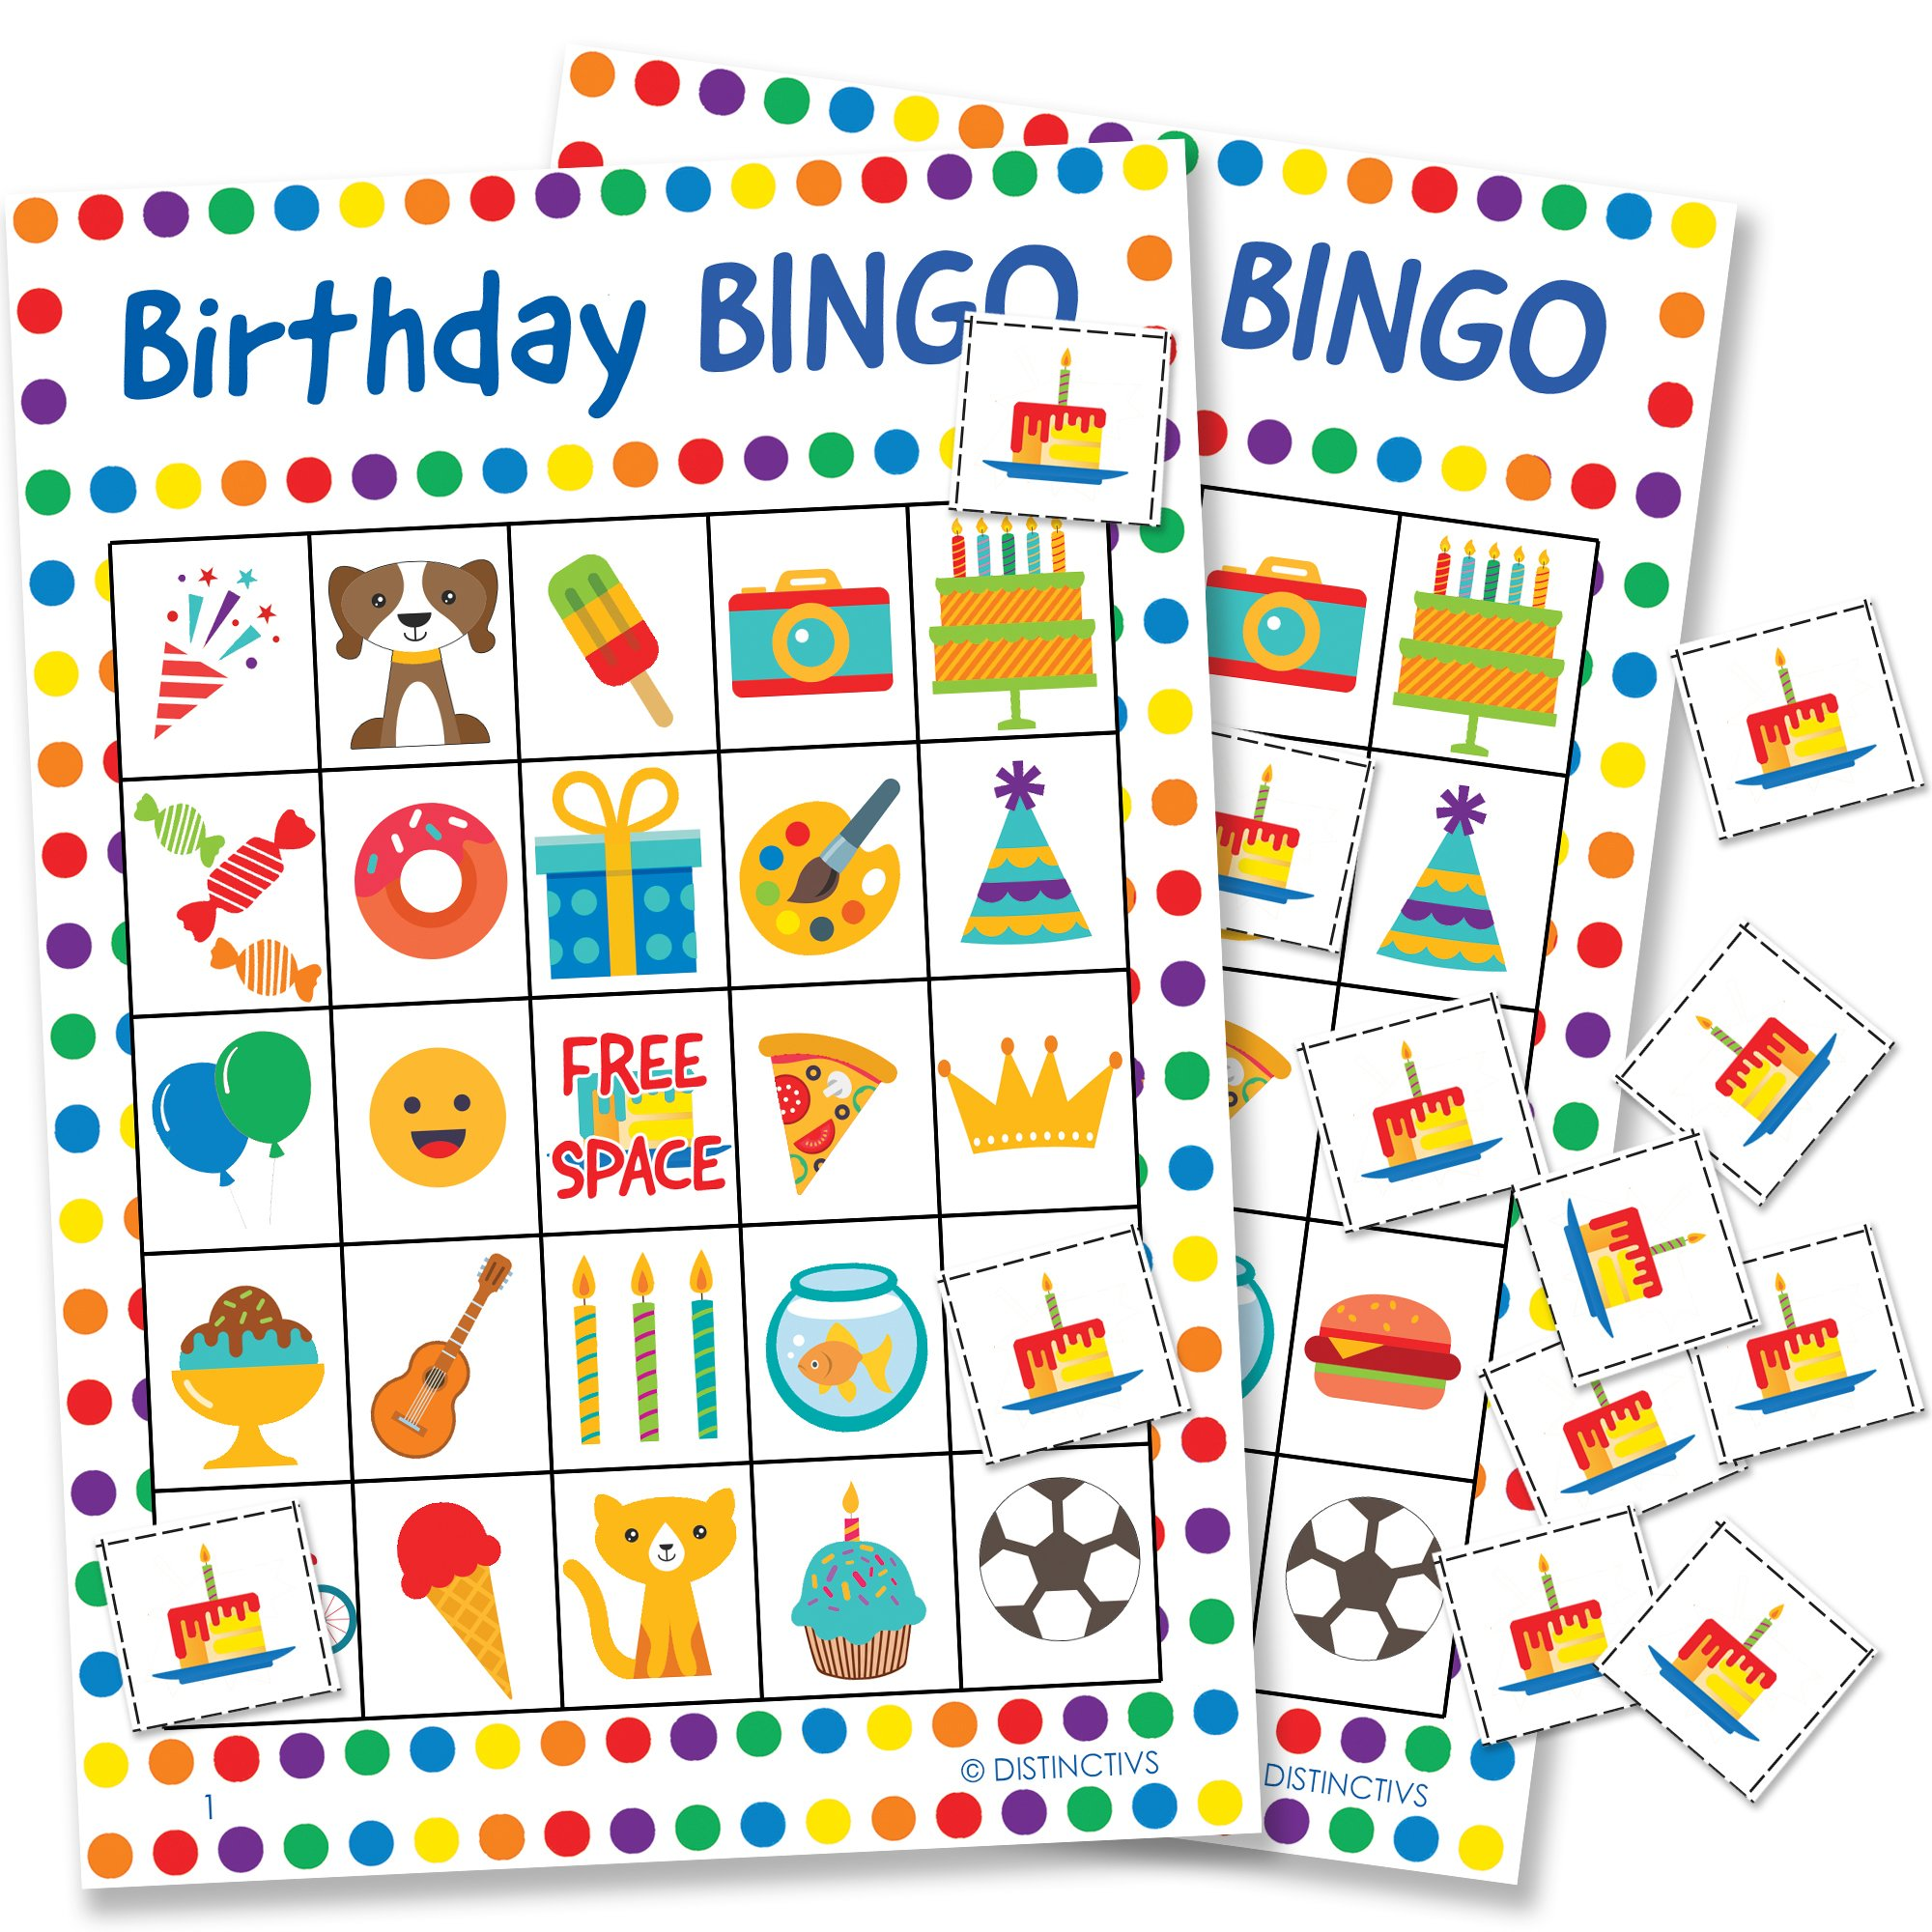 DISTINCTIVS Birthday Bingo Game for Kids - 24 Players